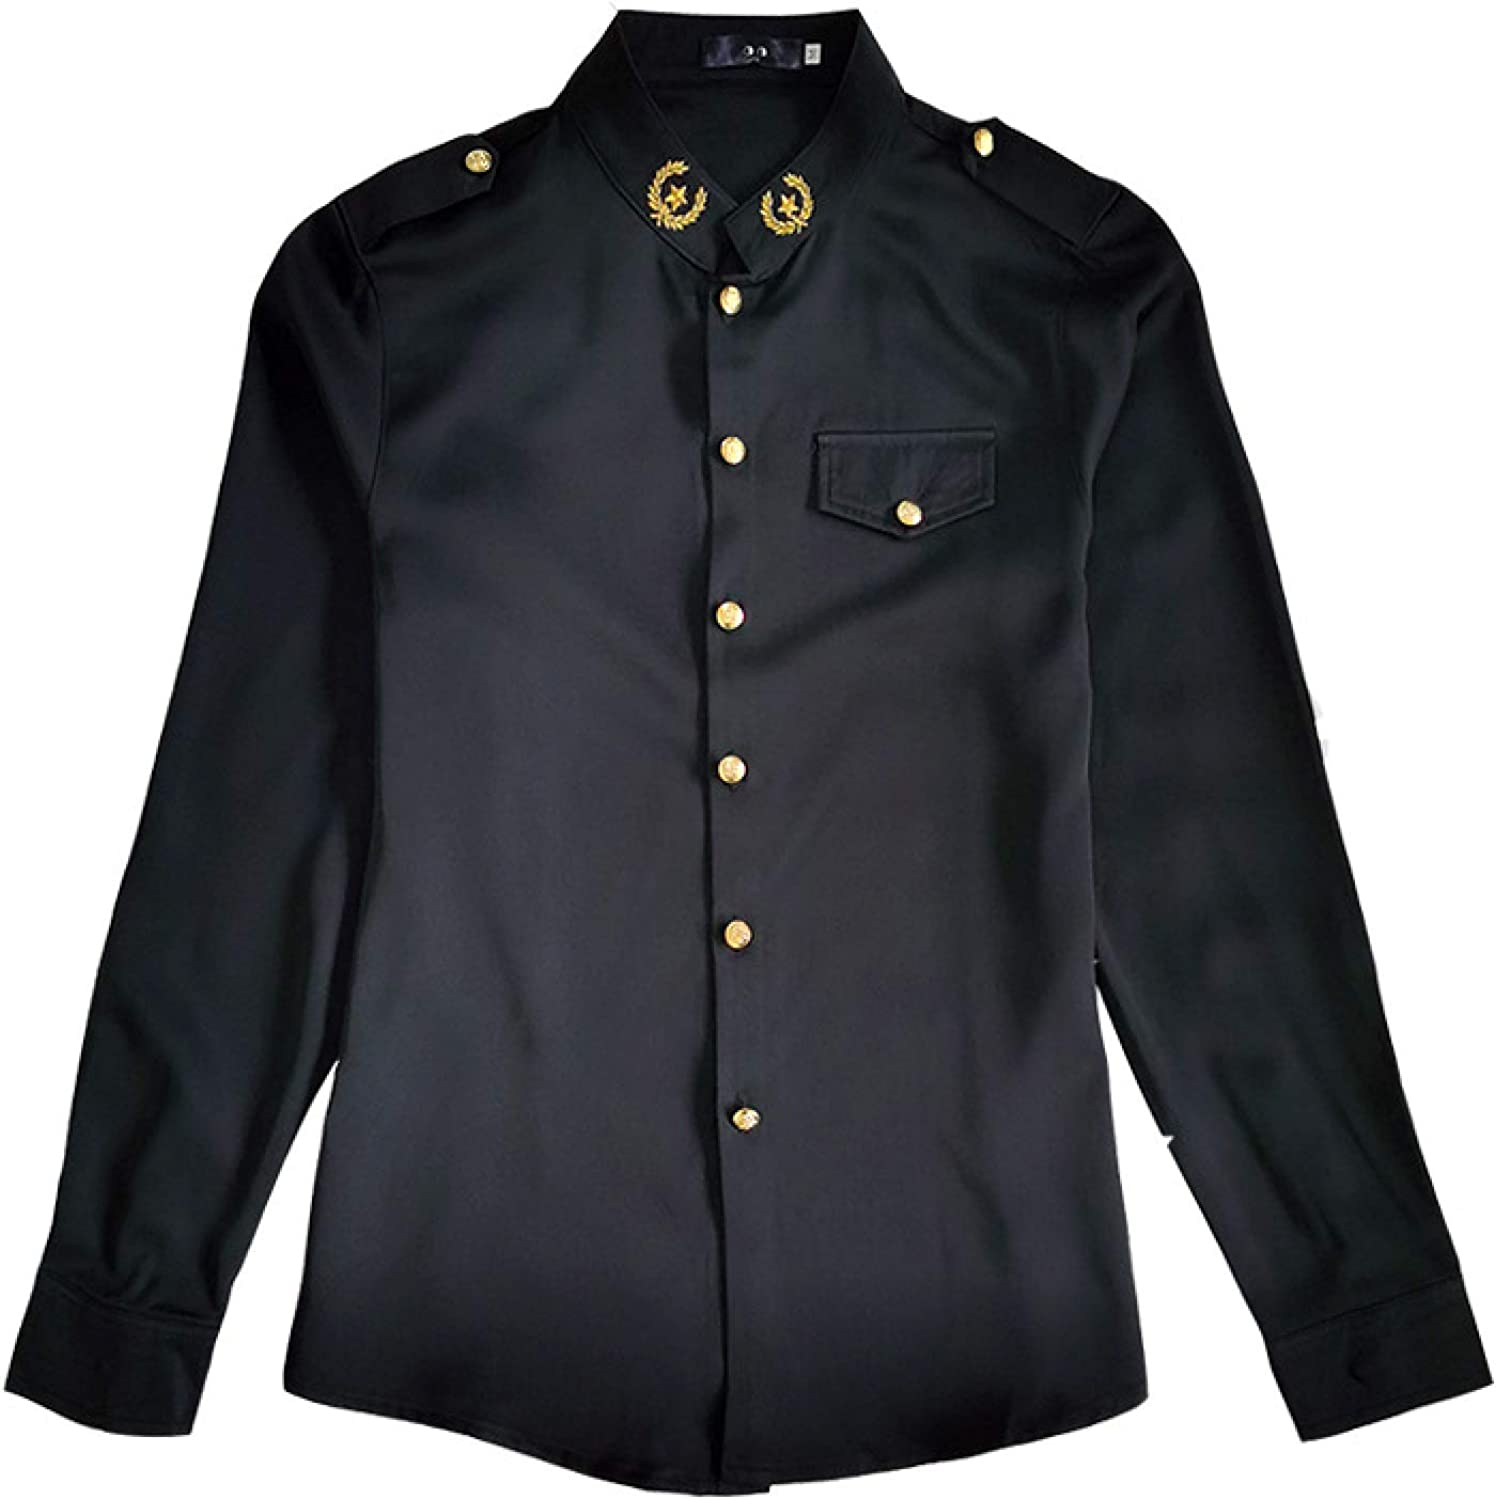 Men's Long-Sleeved Shirts Regular-fit Button and Max 58% OFF Soft Ranking TOP2 Decoration